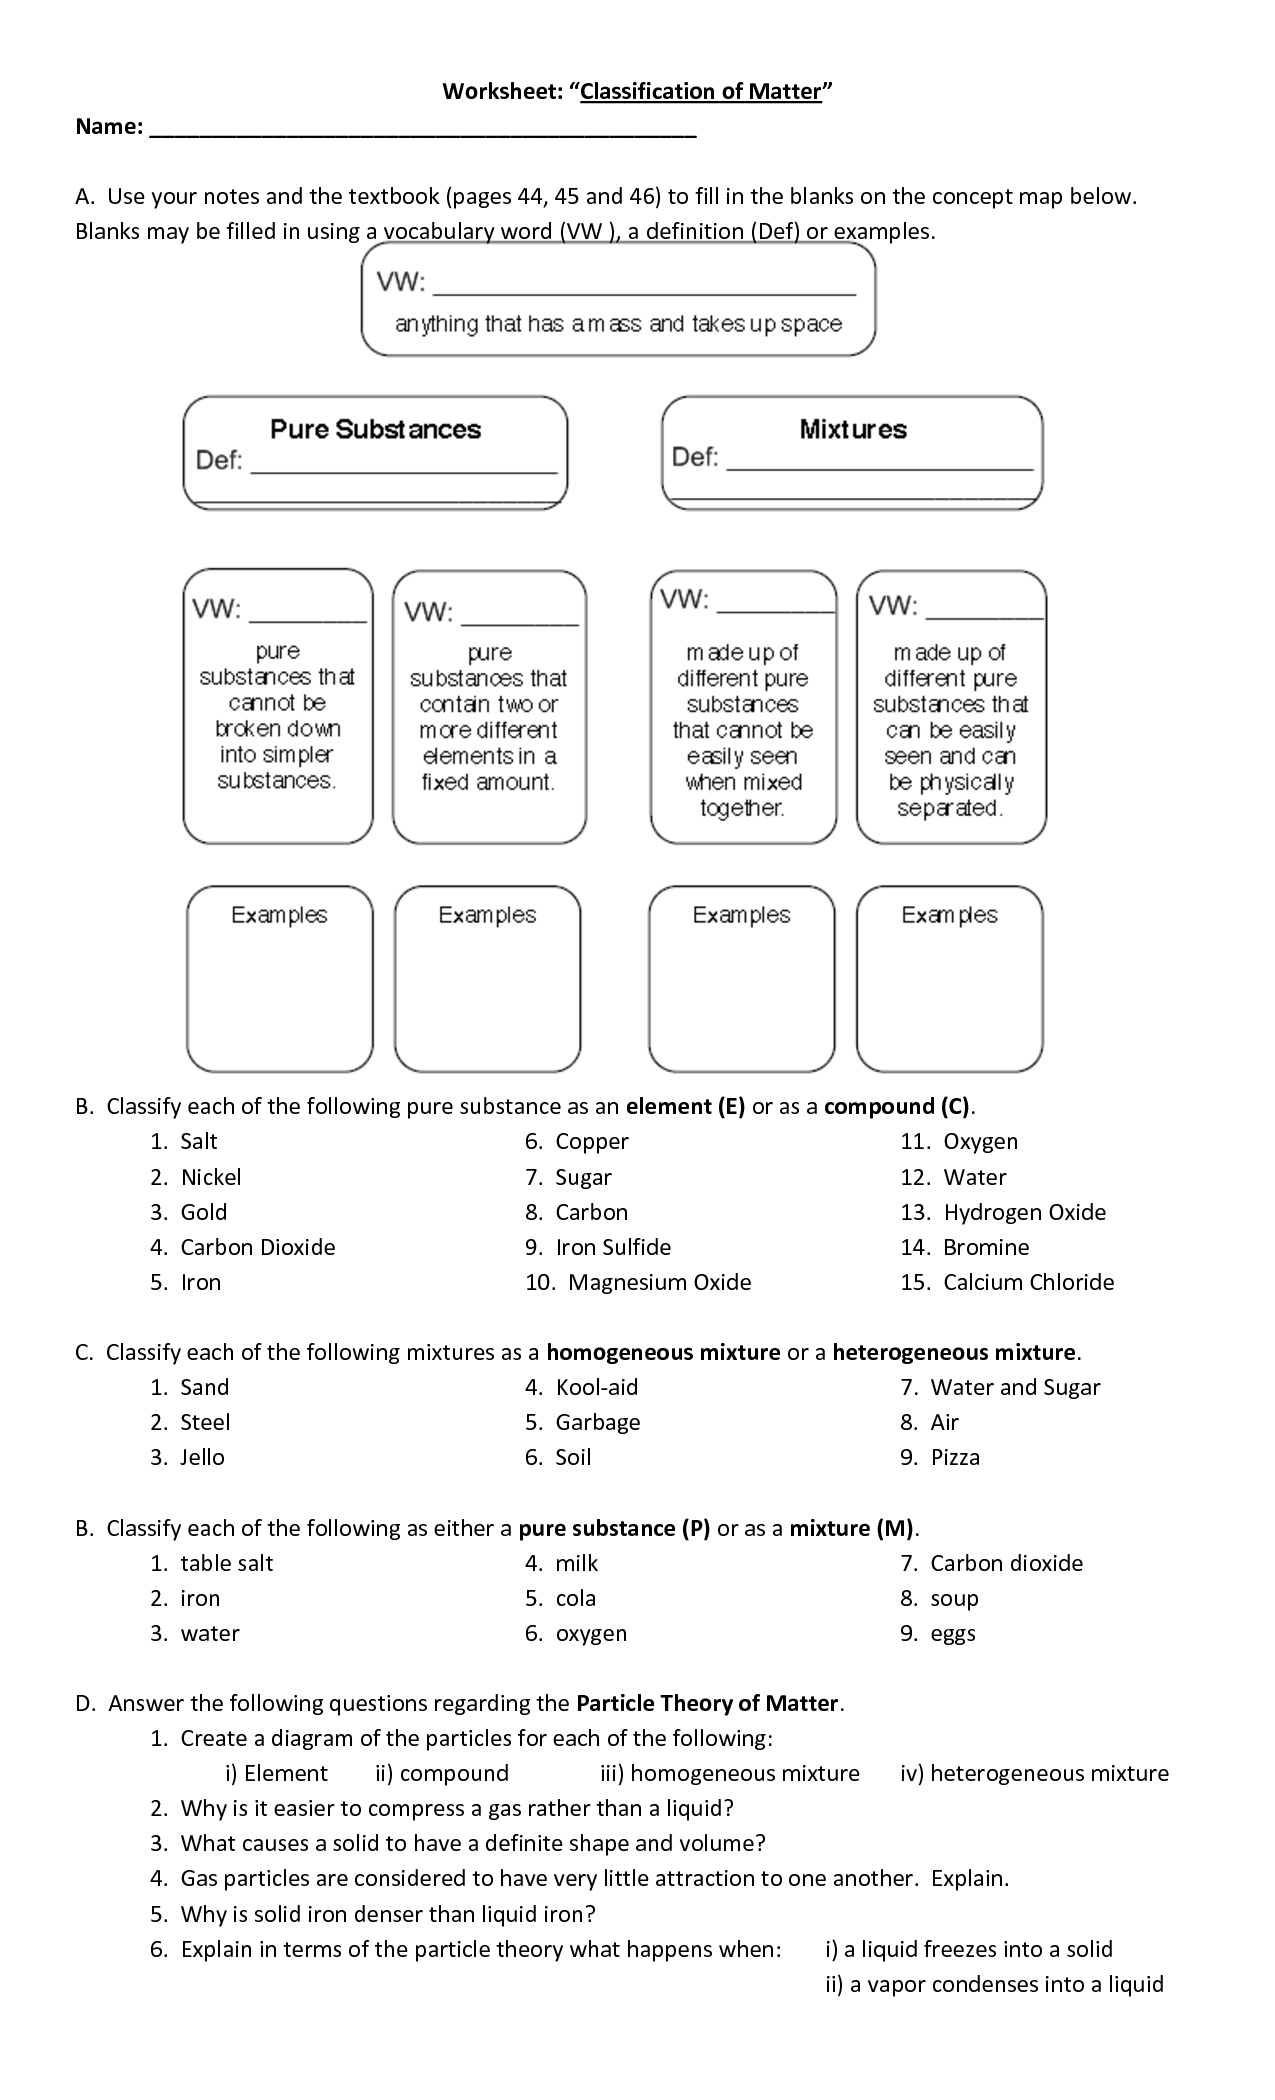 Classification Of Matter Worksheet With Answers